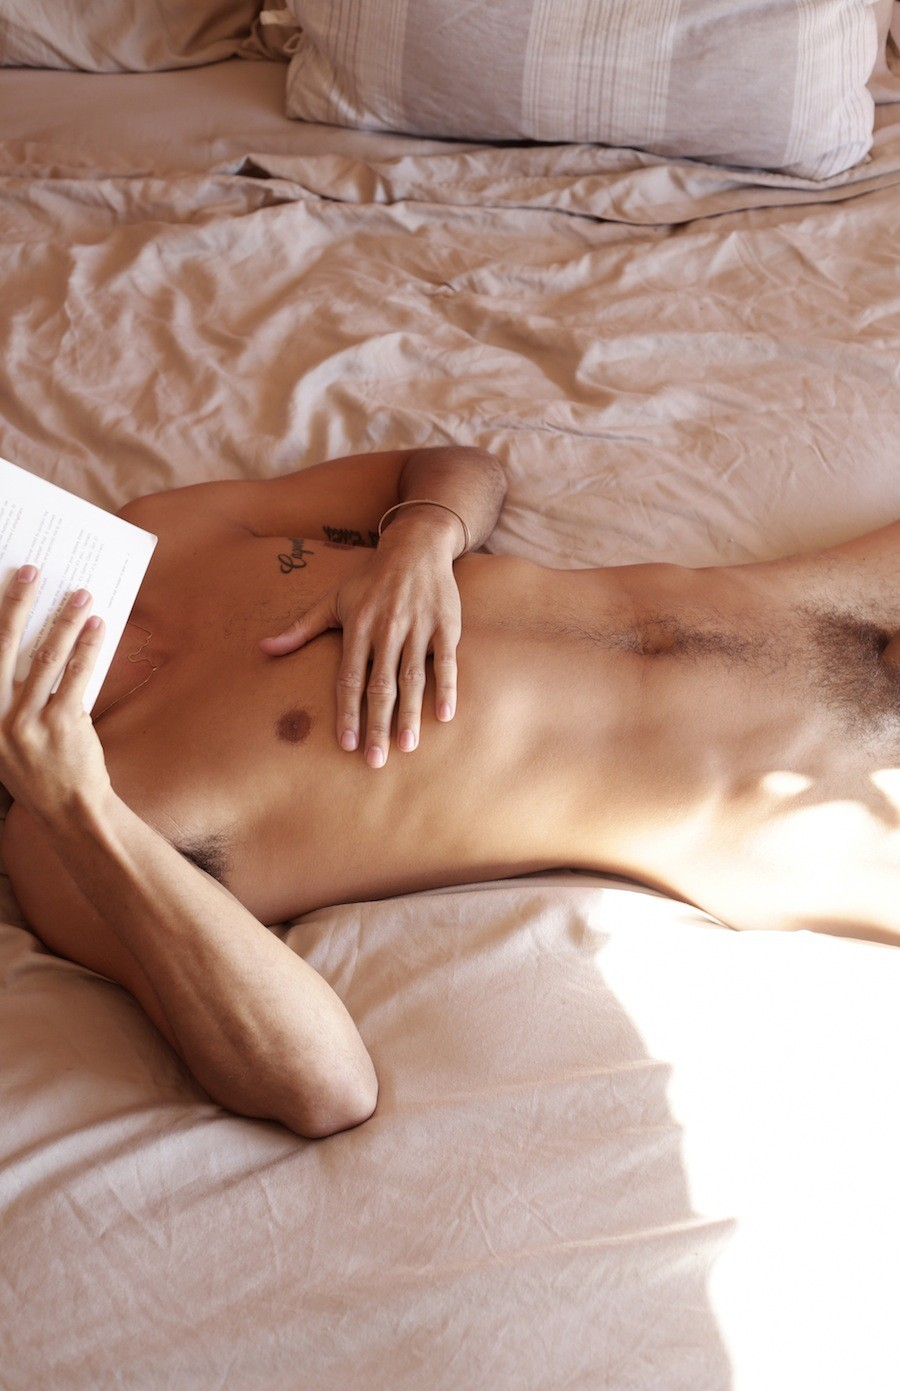 Nude hairy man laying on a bed